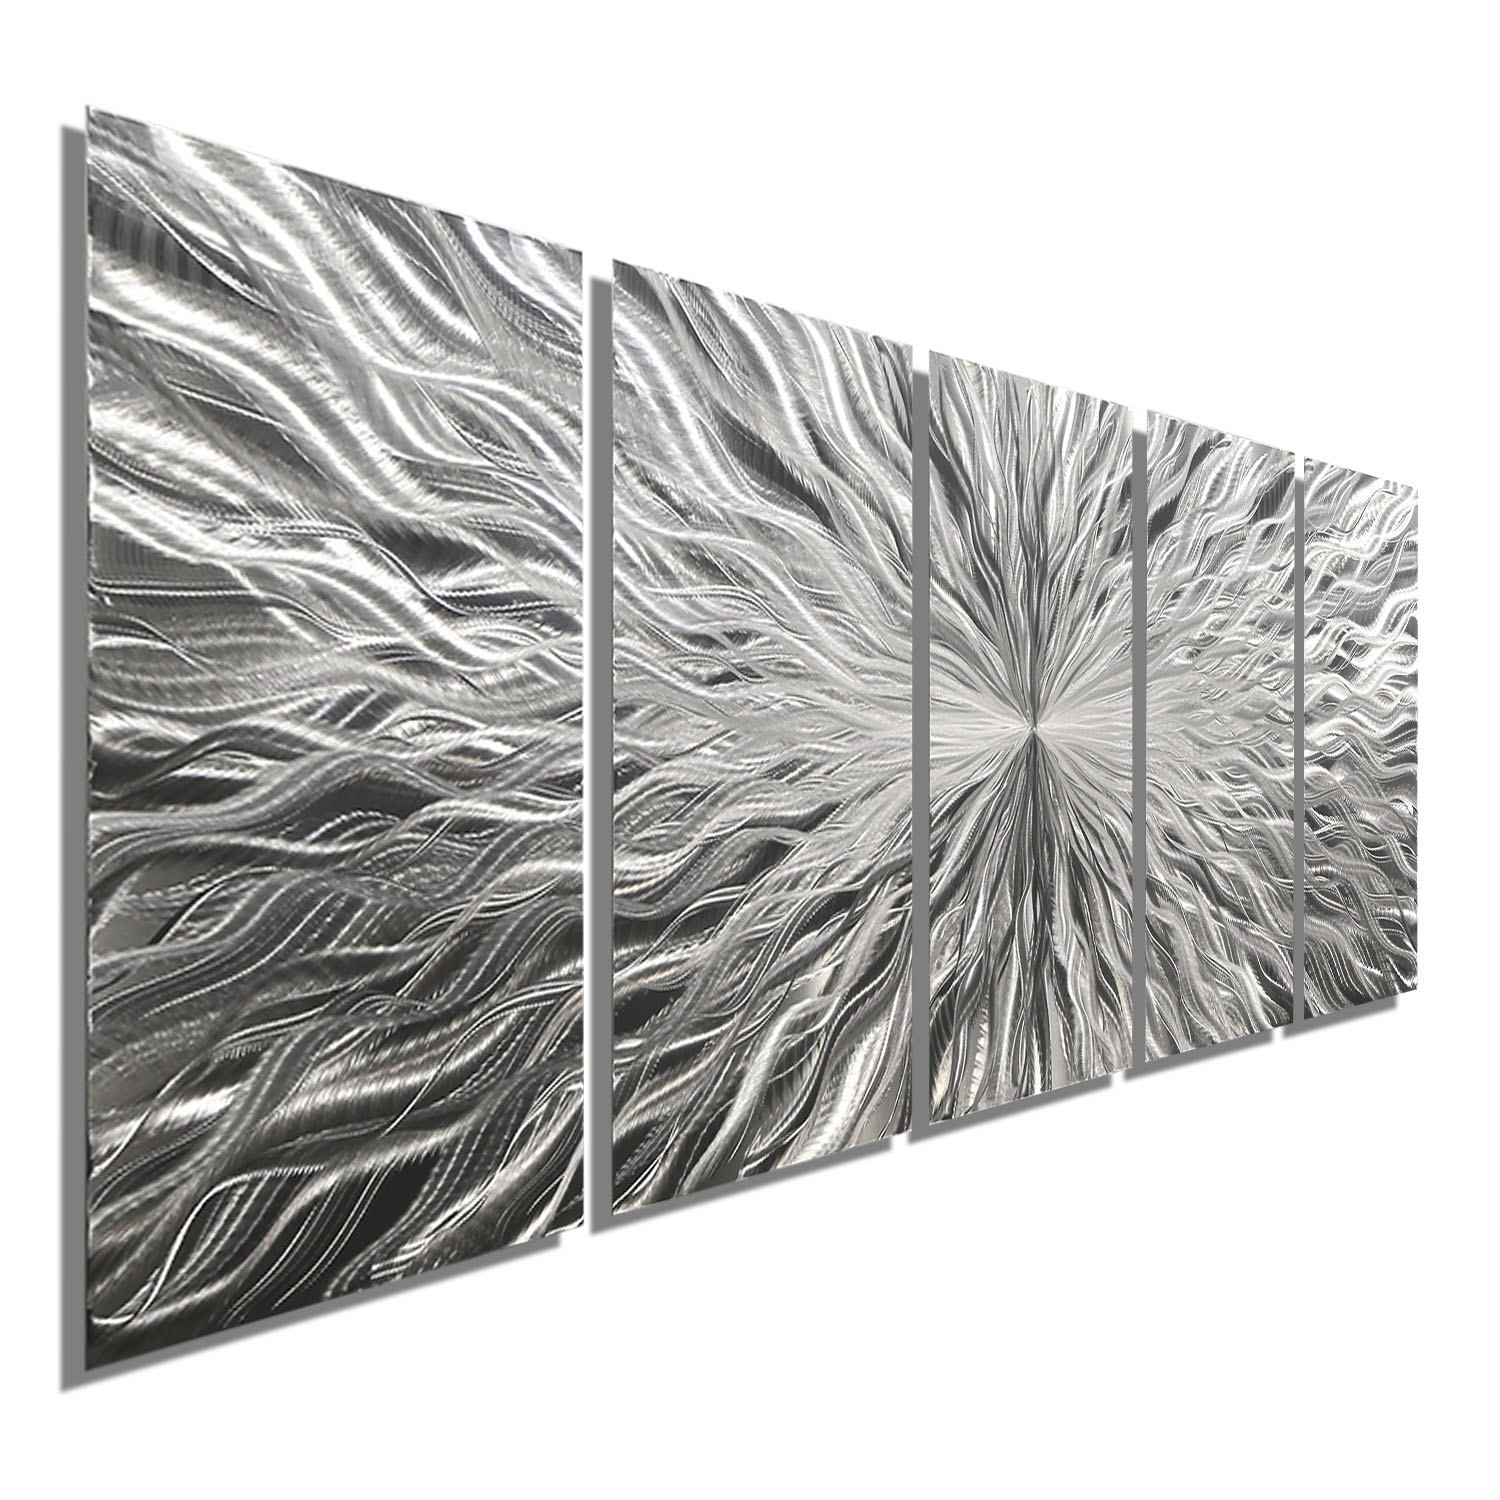 Vortex 5 - Five Panel Silver Modern Abstract Metal Wall Artjon with Most Recent Abstract Metal Wall Art Panels